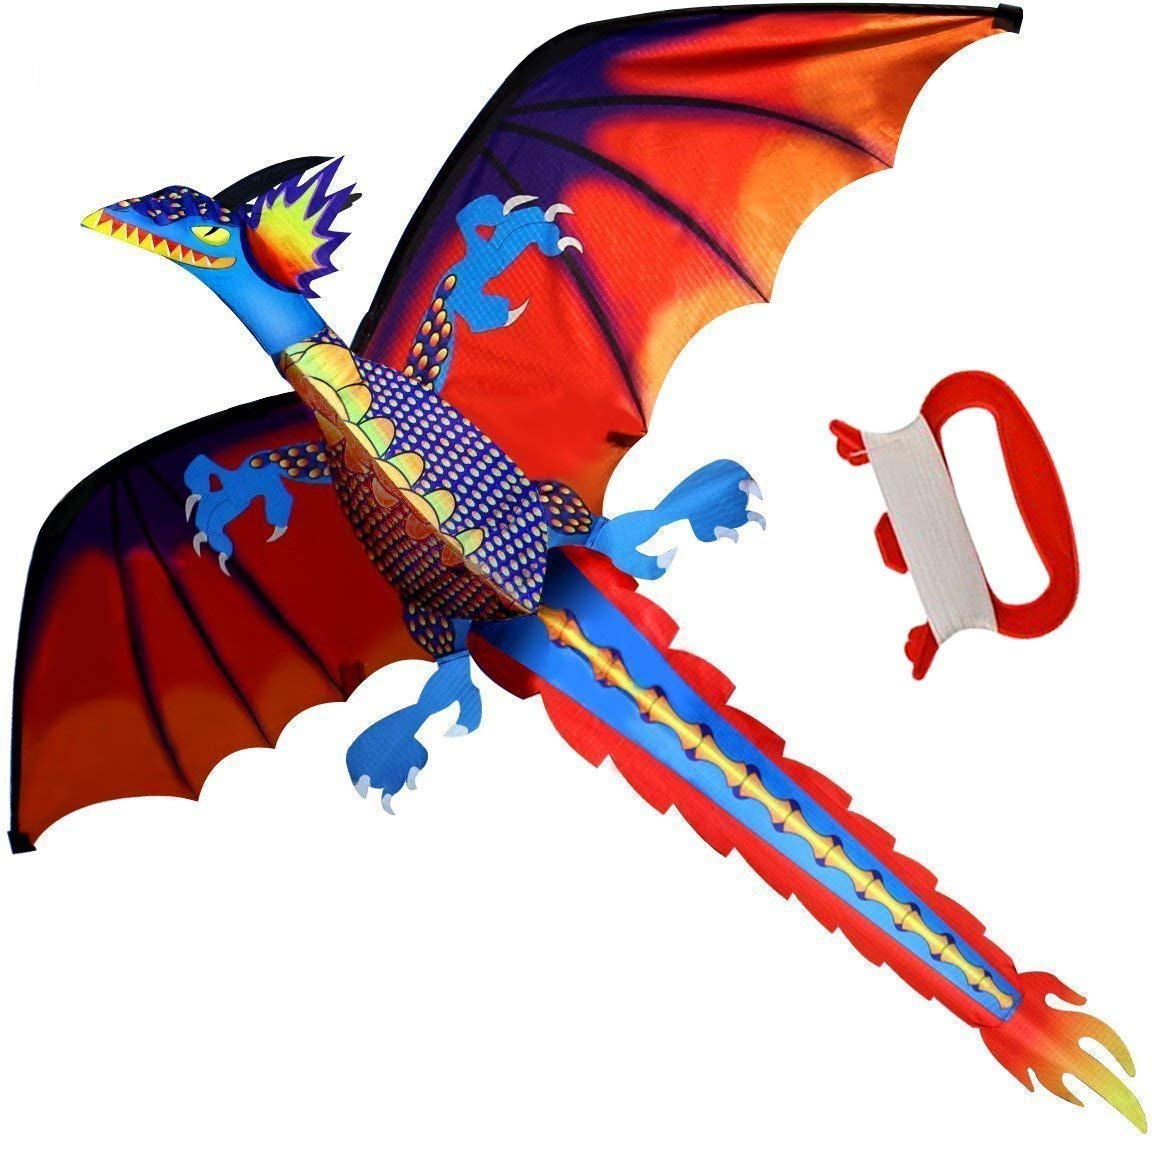 HENGDA KITE Upgrade Classical Dragon Kite Easy to Fly 55inch x 62inch Single Line with Tail